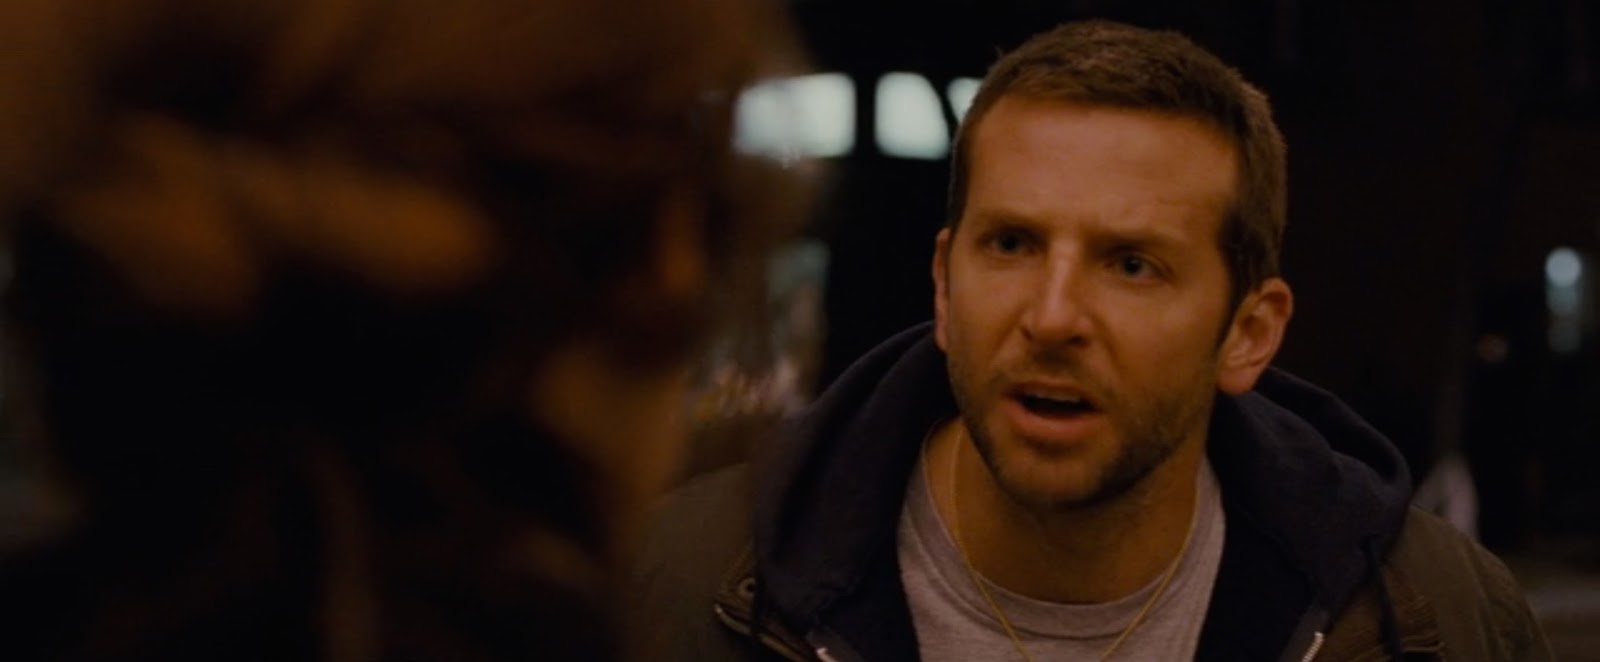 silver linings playbook diner scene analysis essays